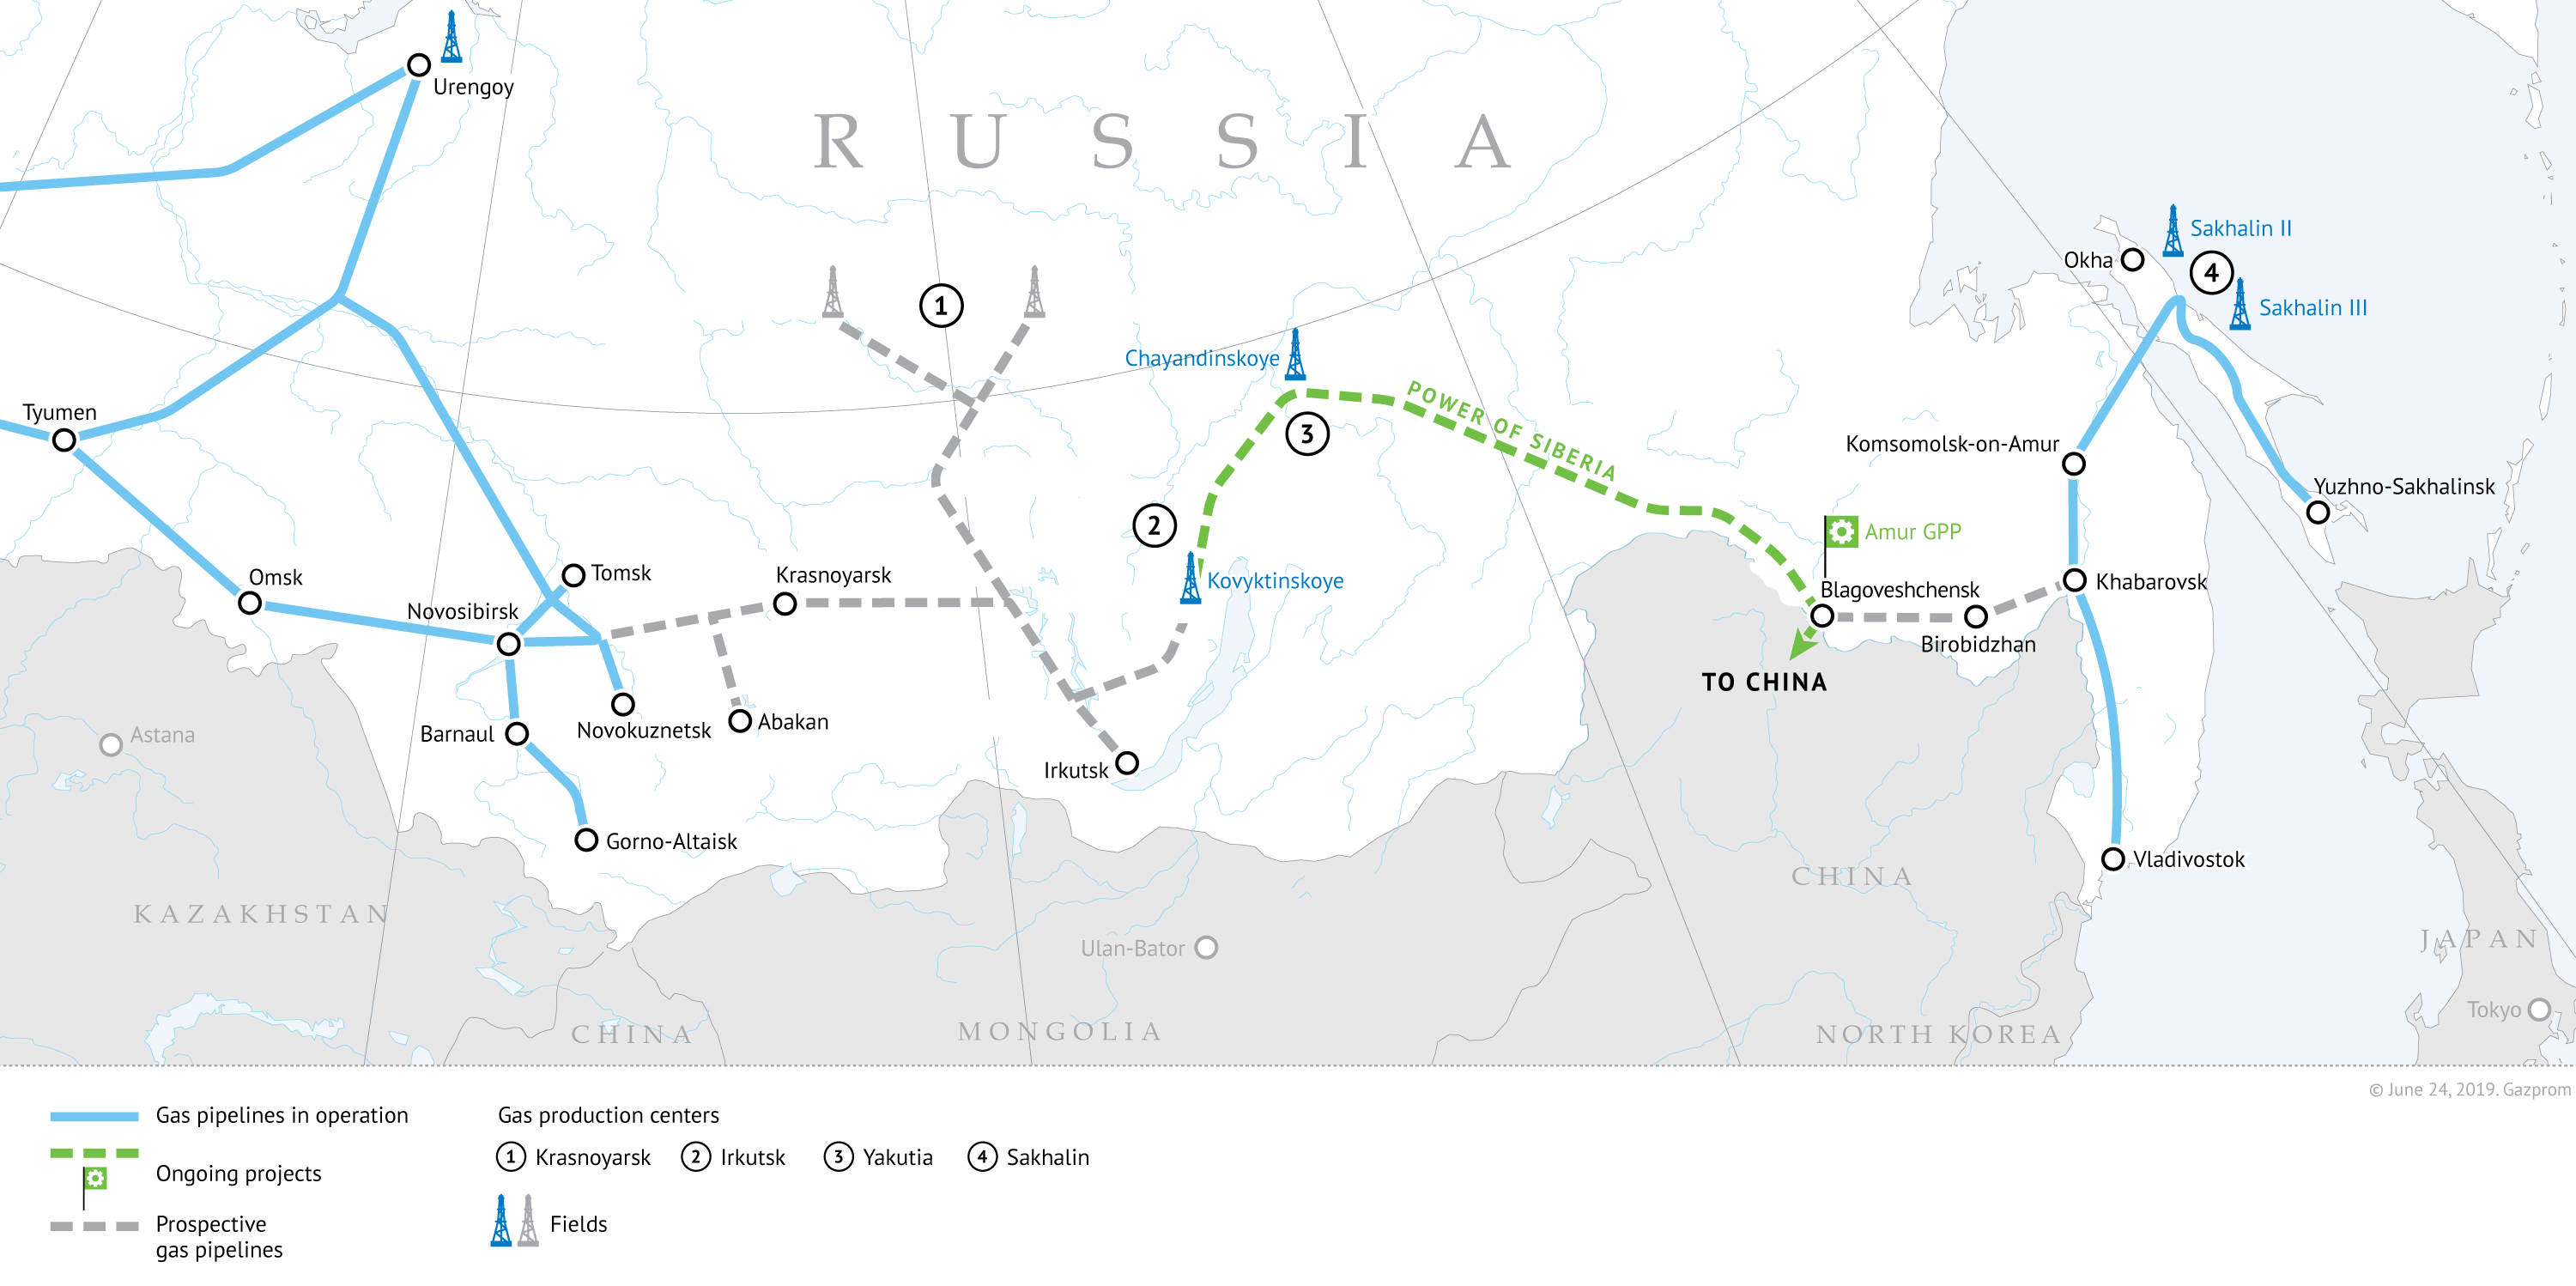 Developing gas resources and shaping gas transmission system in Eastern Russia. Green line - Power of Siberia on the map